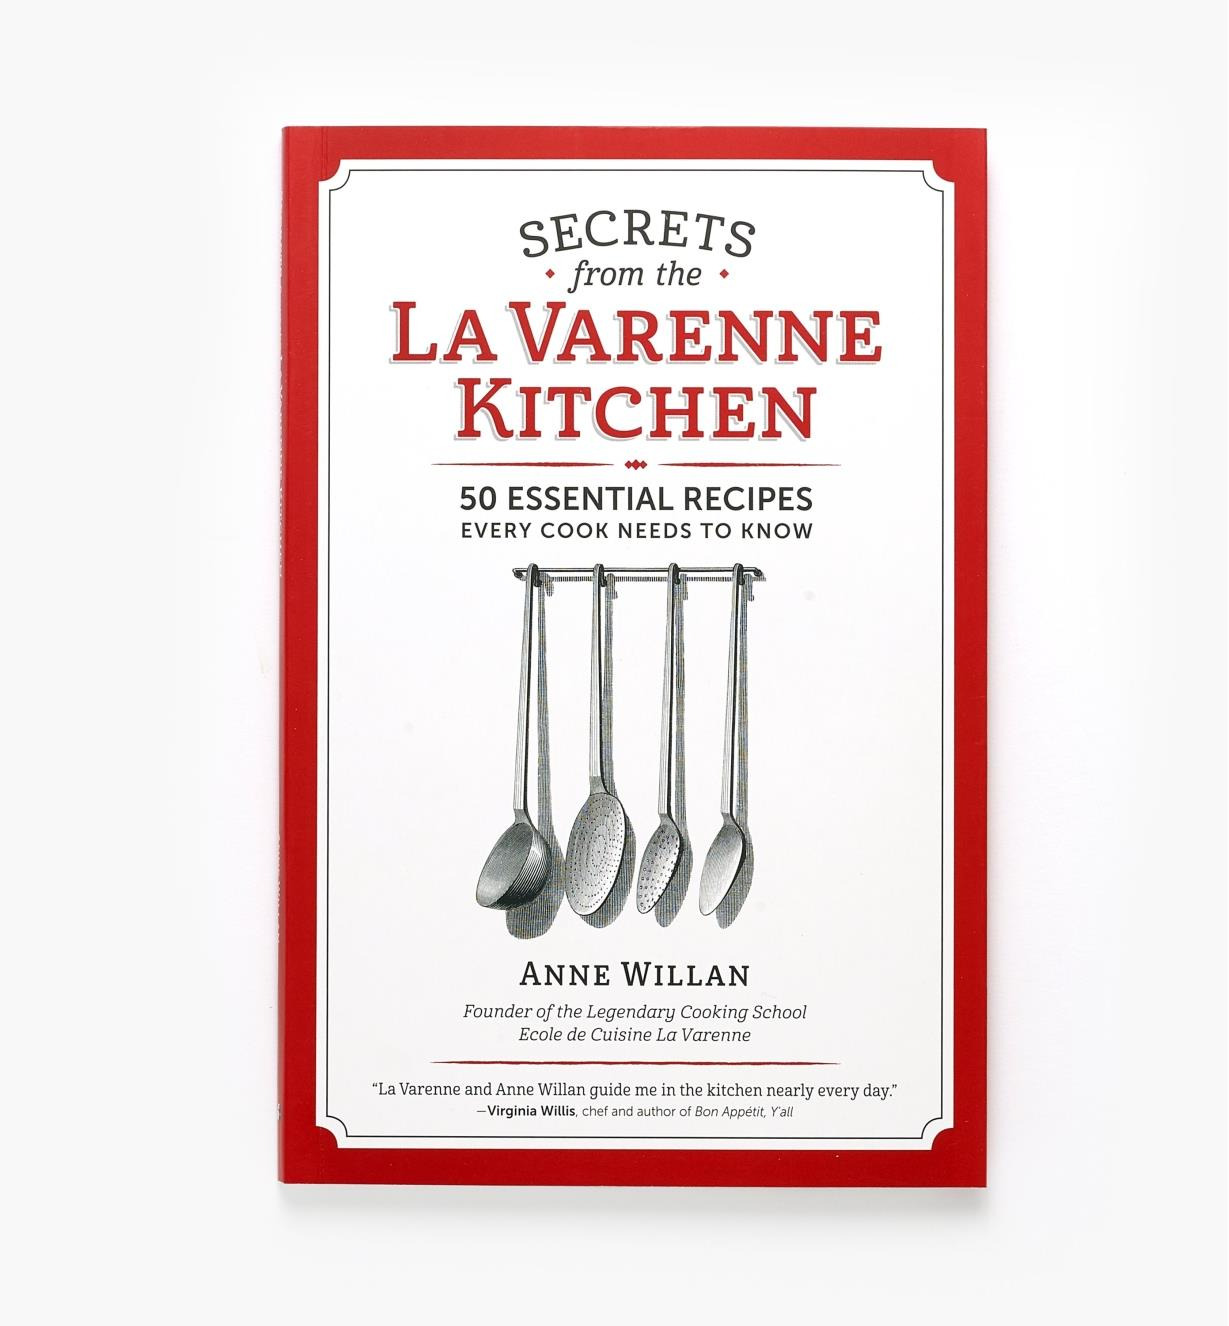 LA435 - Secrets from the La Varenne Kitchen